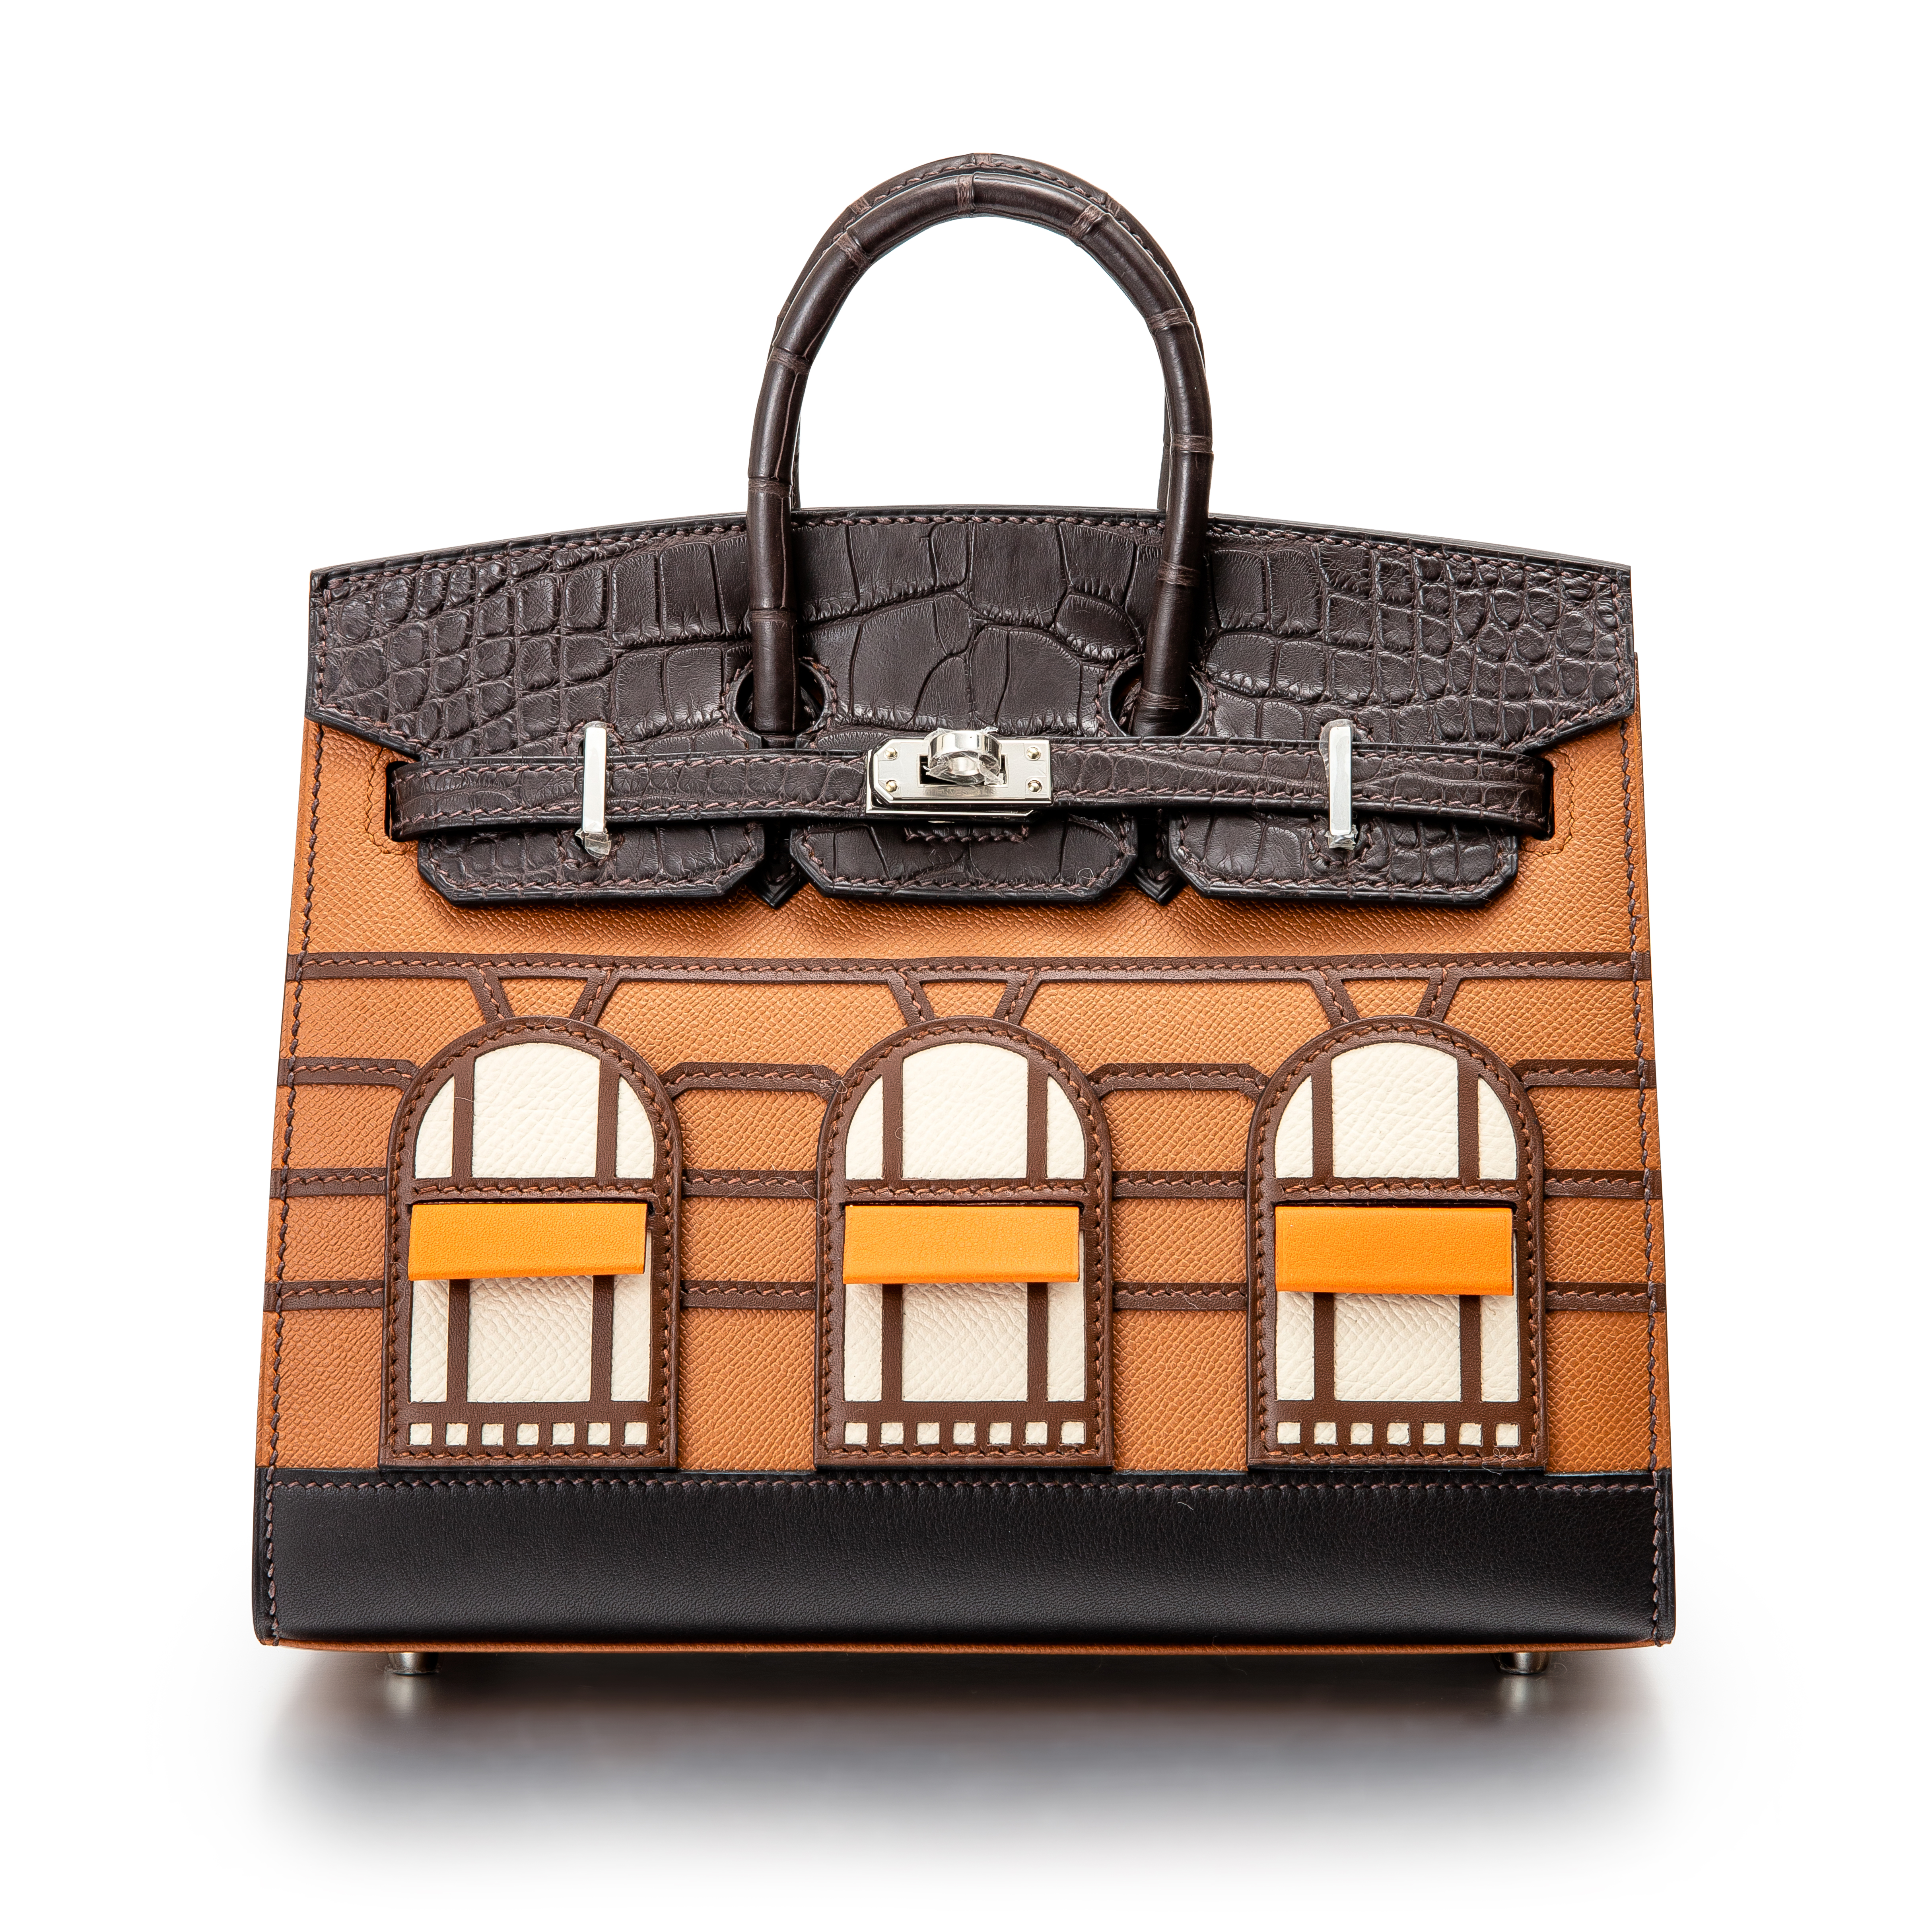 View full screen - View 1 of Lot 8513. Limited Edition Birkin Faubourg 20cm in Madame, Matte Crocodile, Sombrero, Epsom and Swift Leather with Palladium Hardware, 2020.